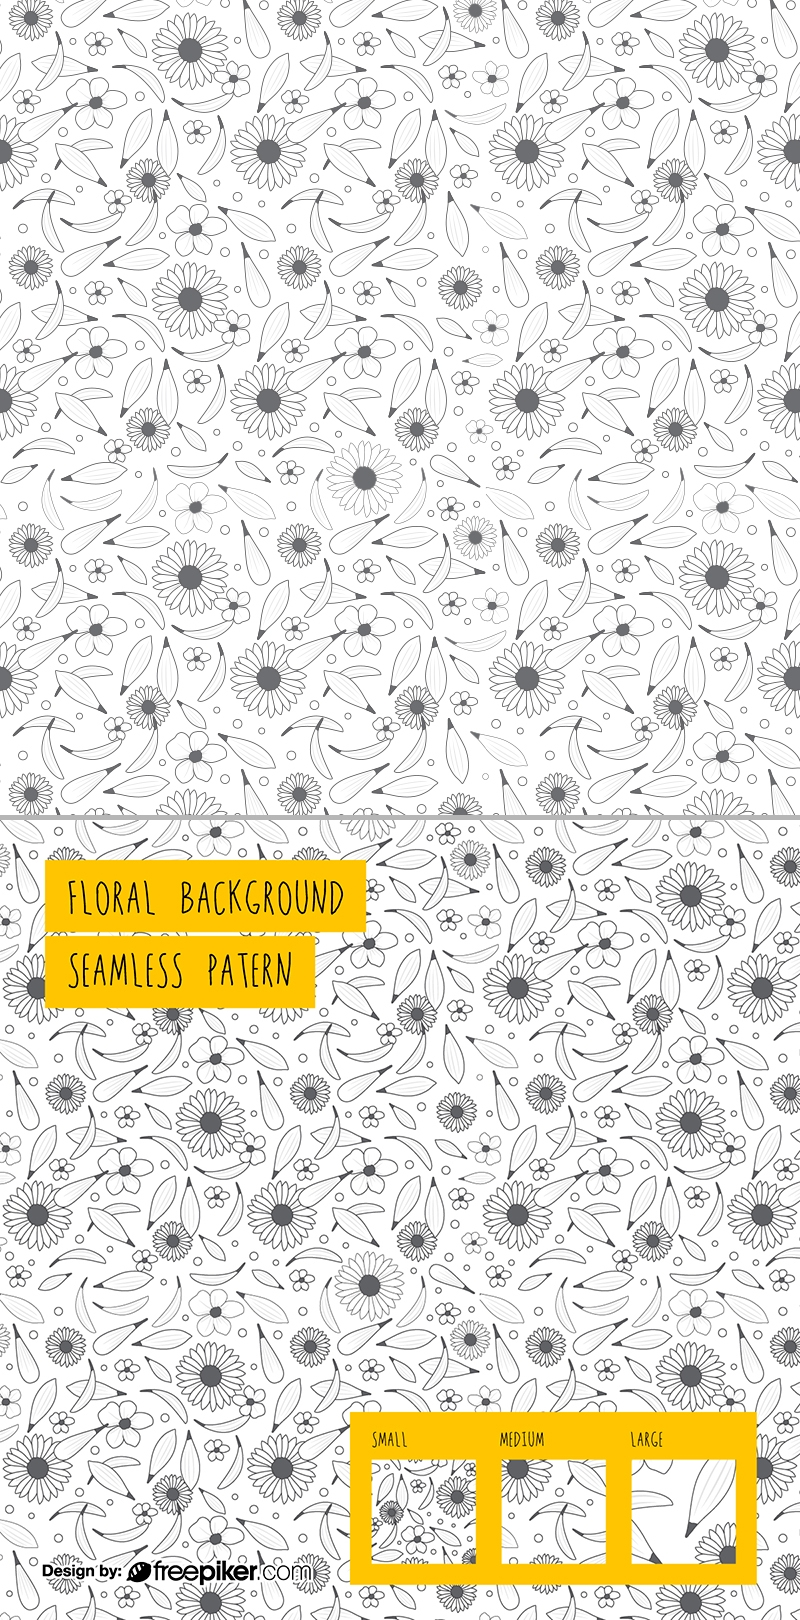 Floral Background Seamless Pattern